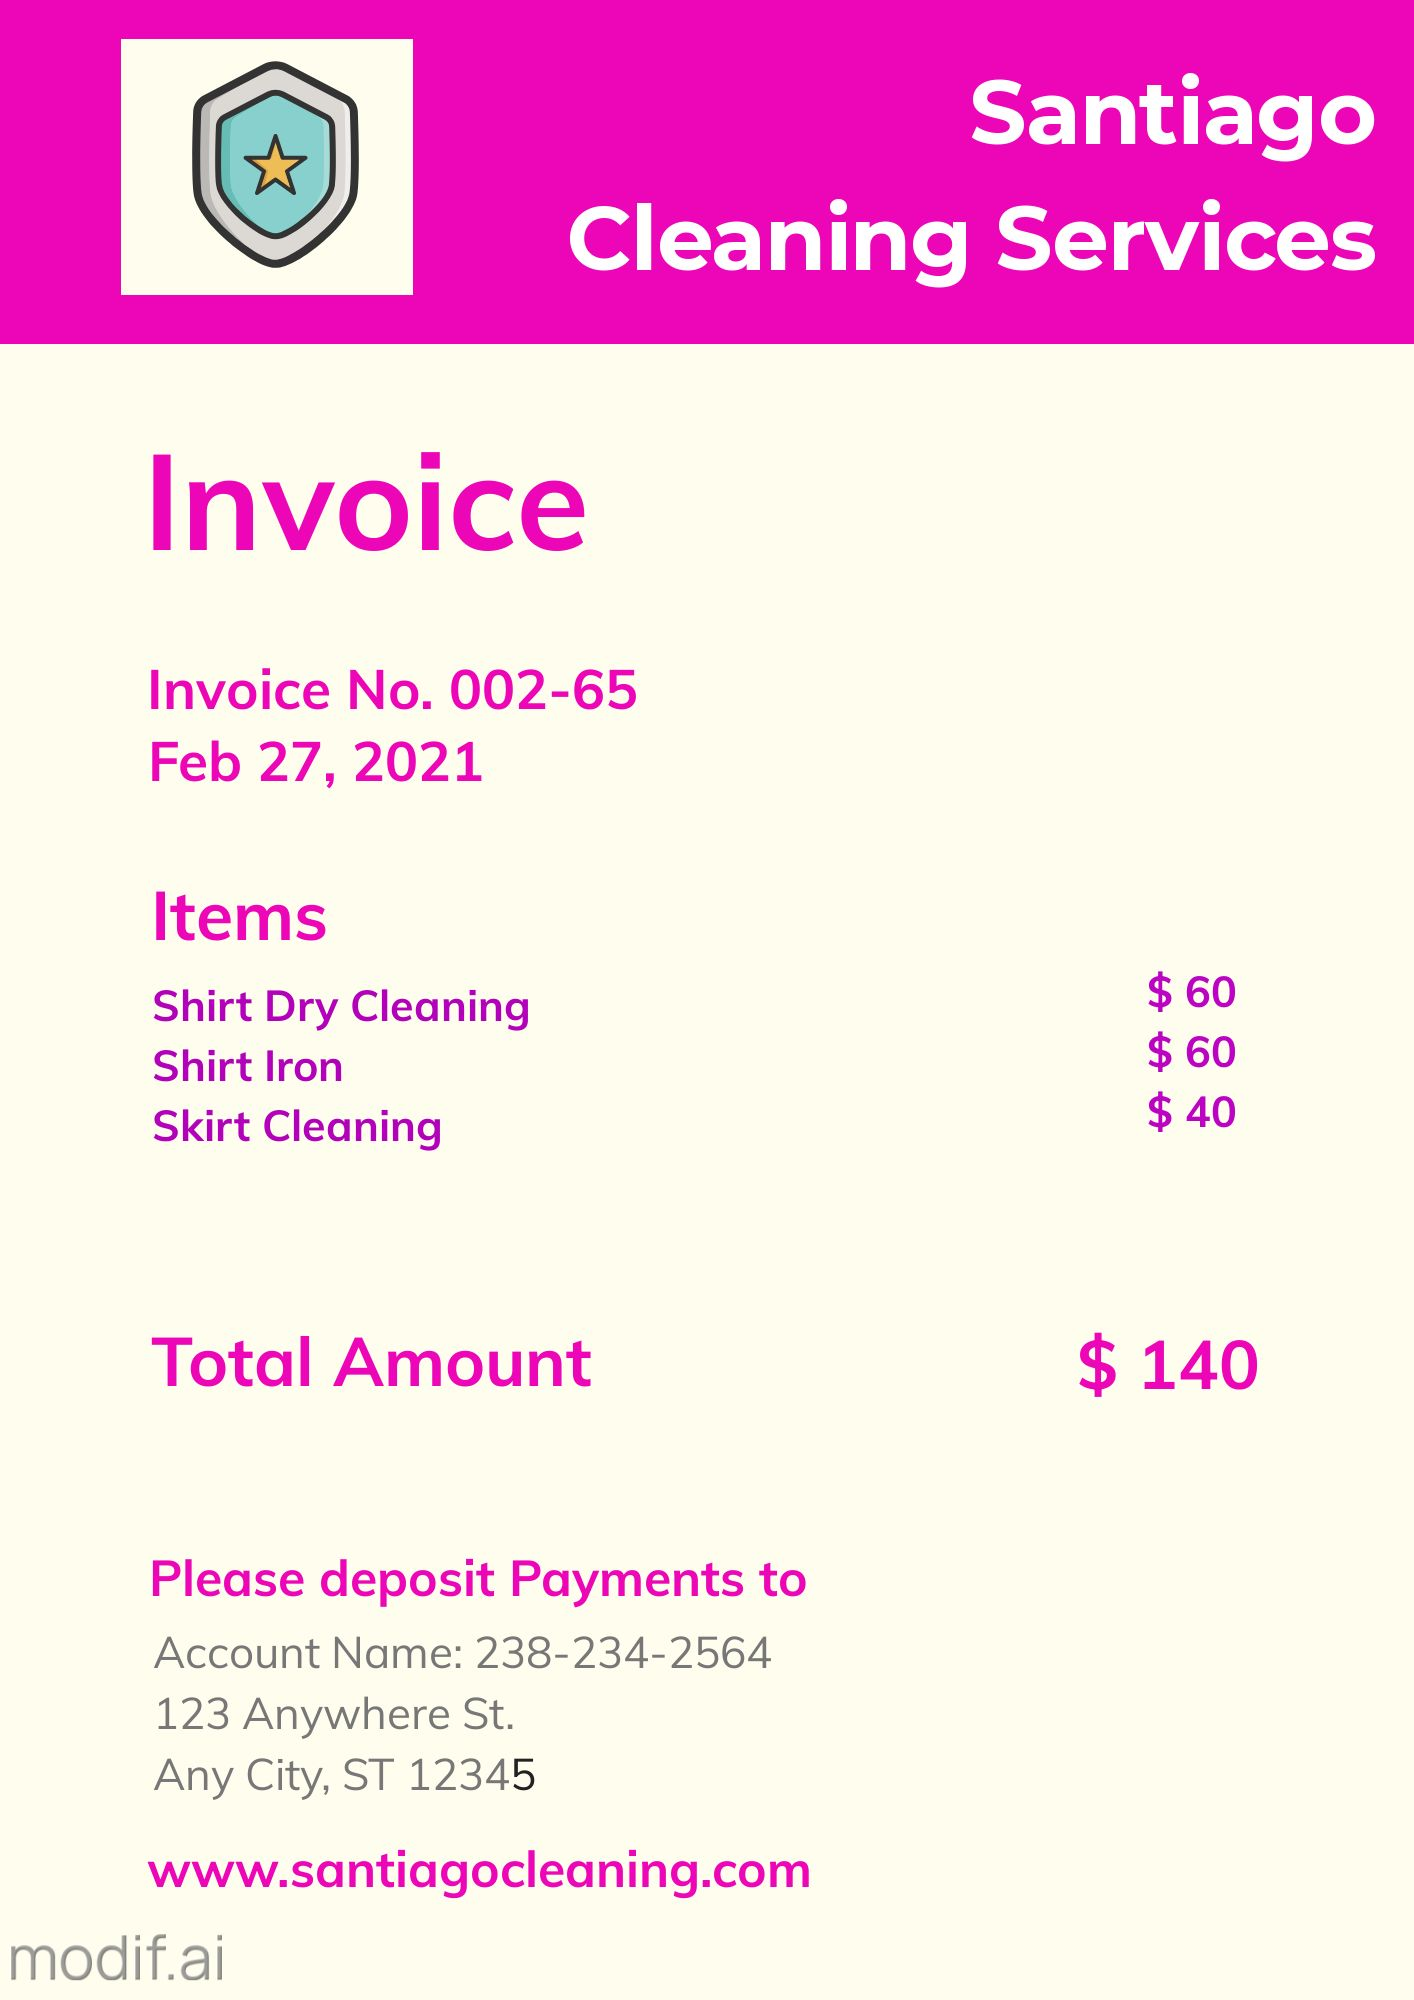 Invoice Design Template for Cleaning Service